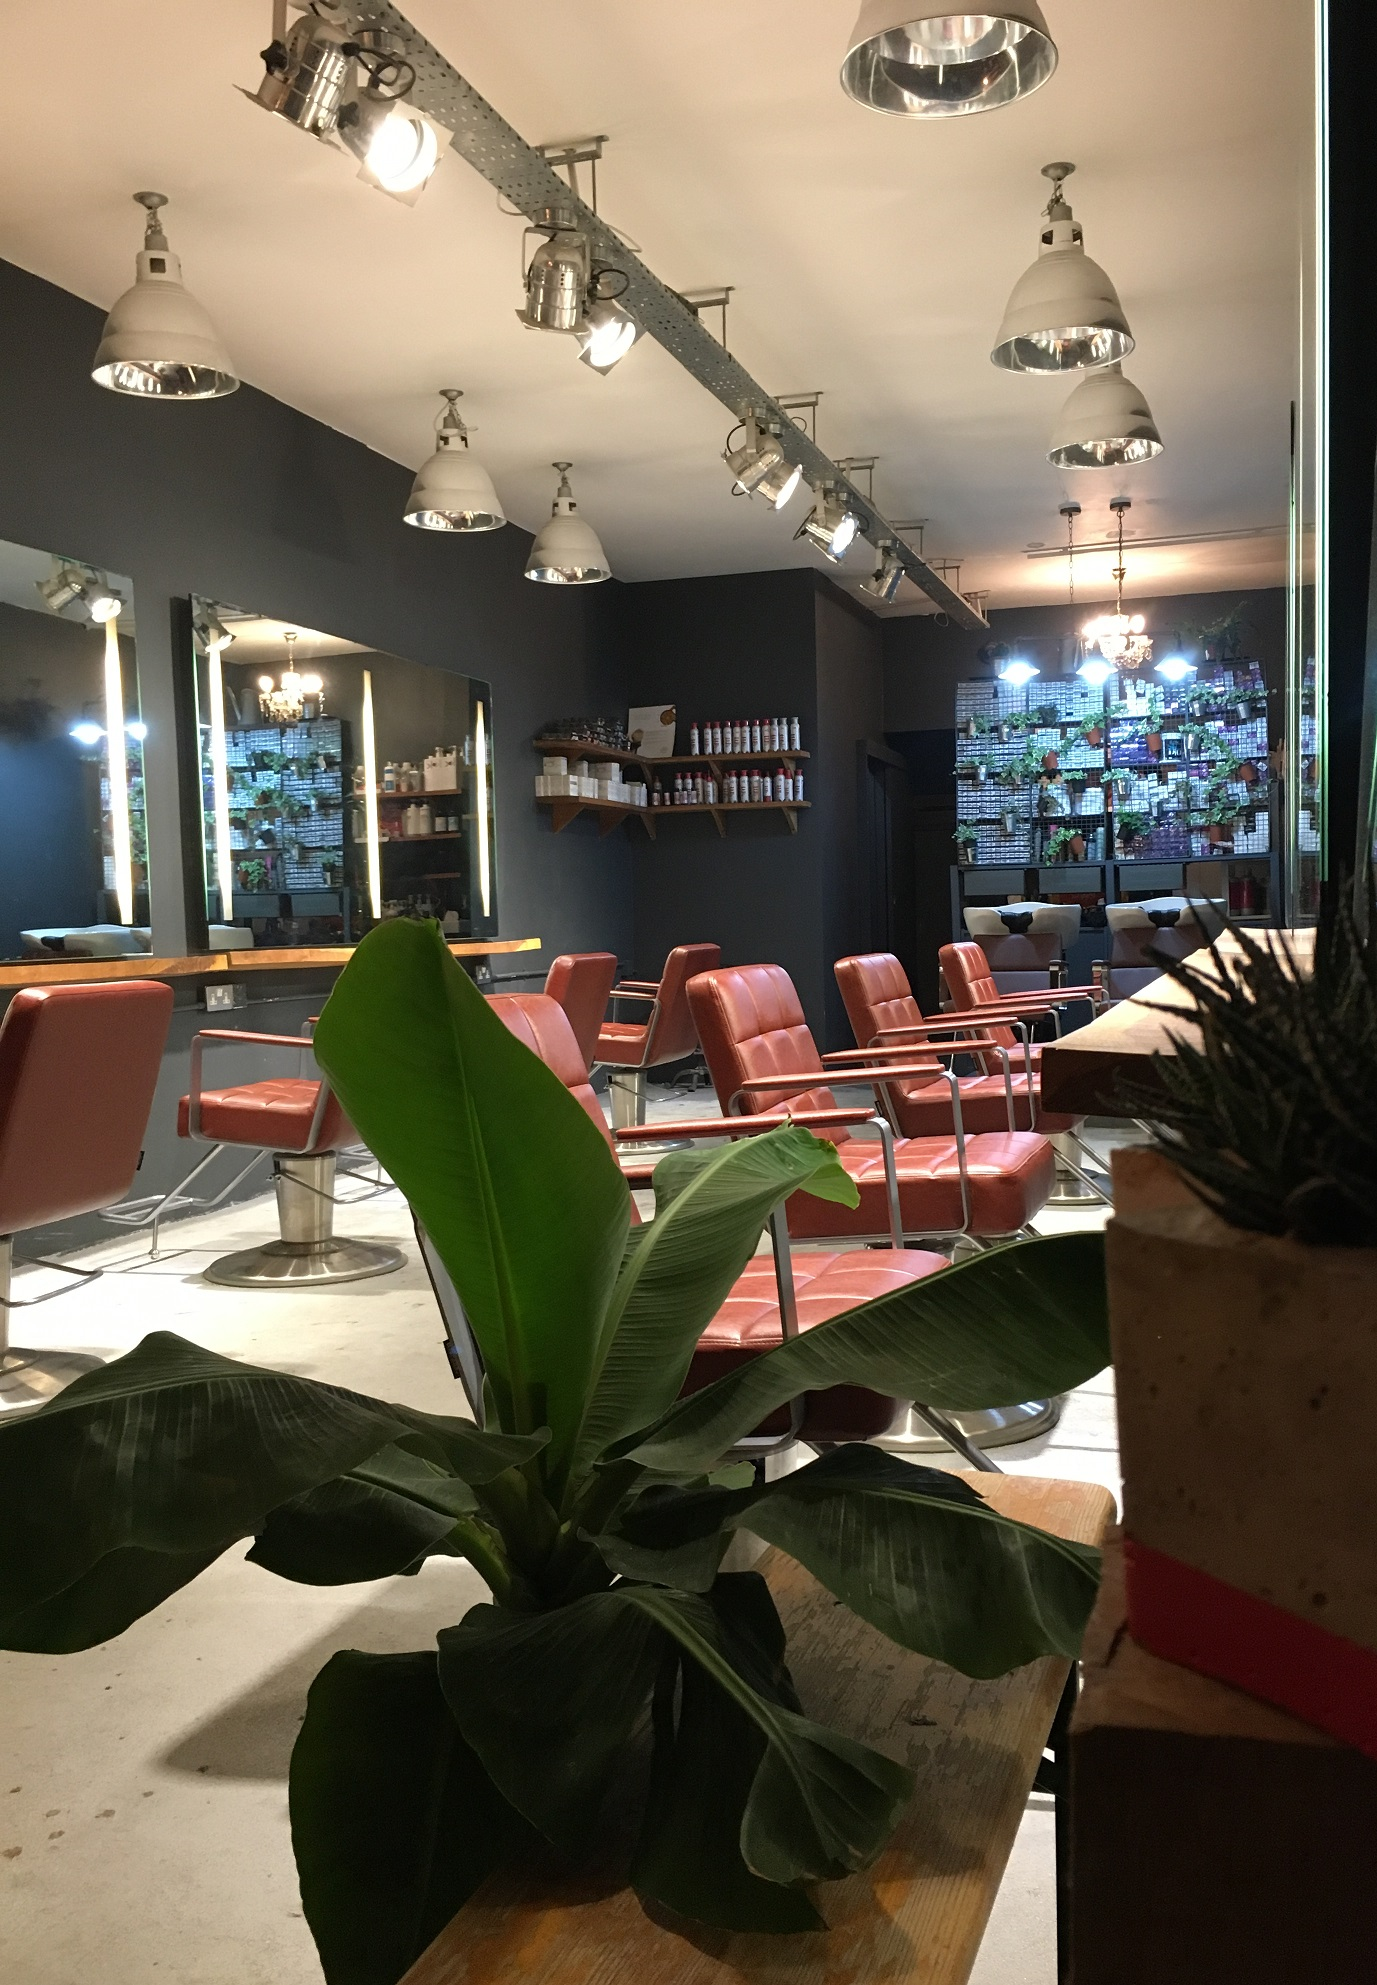 francesco picardi shoreditch hair salon